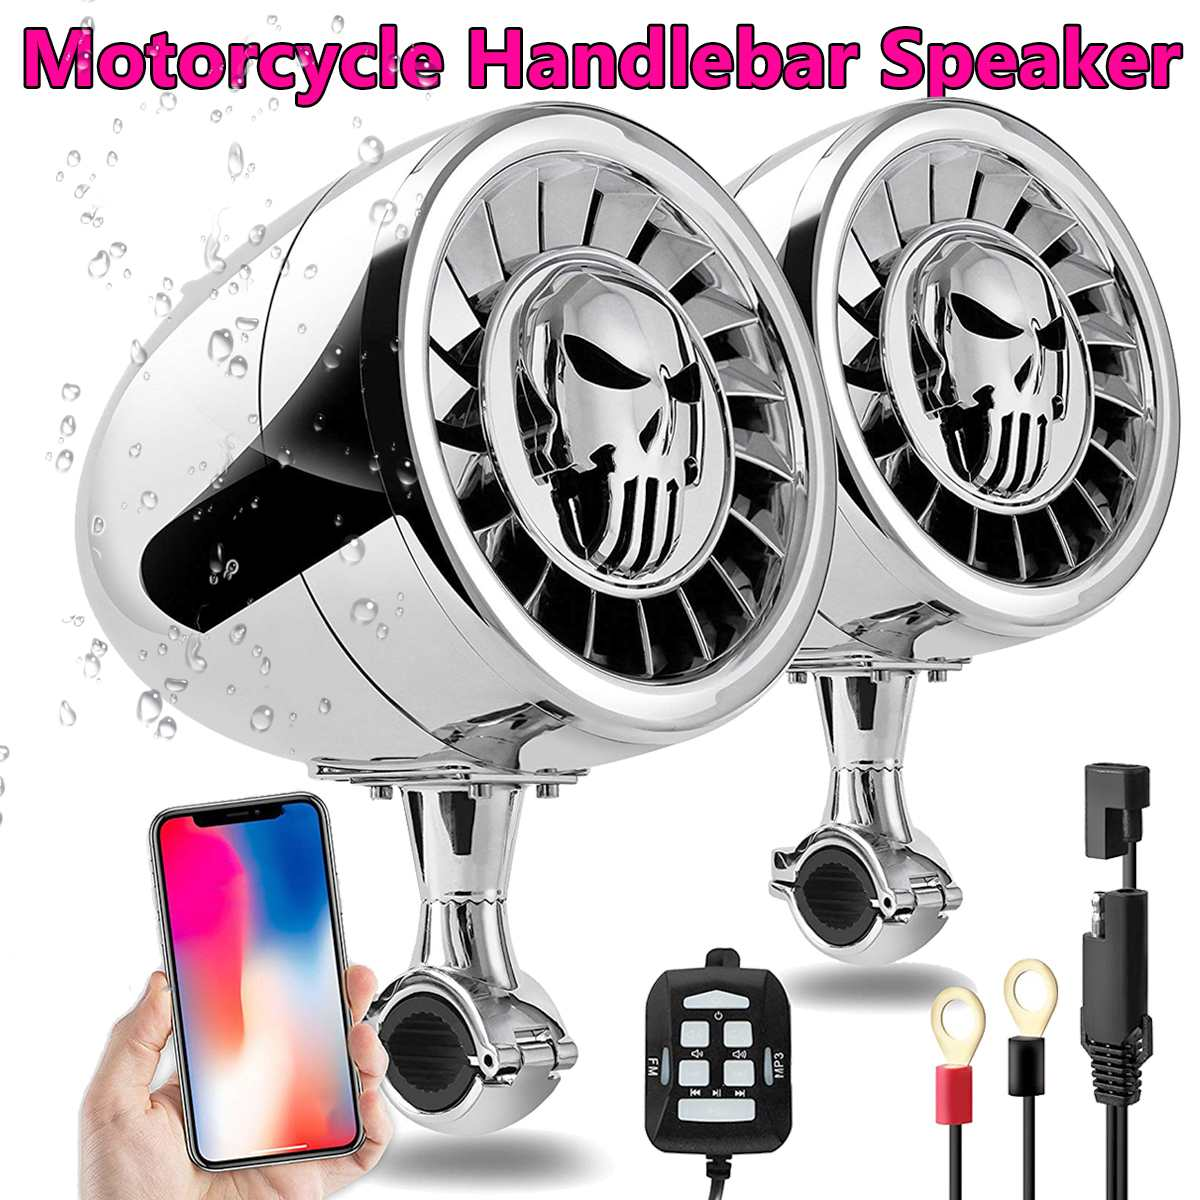 600 W 5 Pollici MP3 Musica Audio Player Altoparlanti bluetooth Per Moto Impermeabile Stereo Portatile Motos Audio Amp Sistema